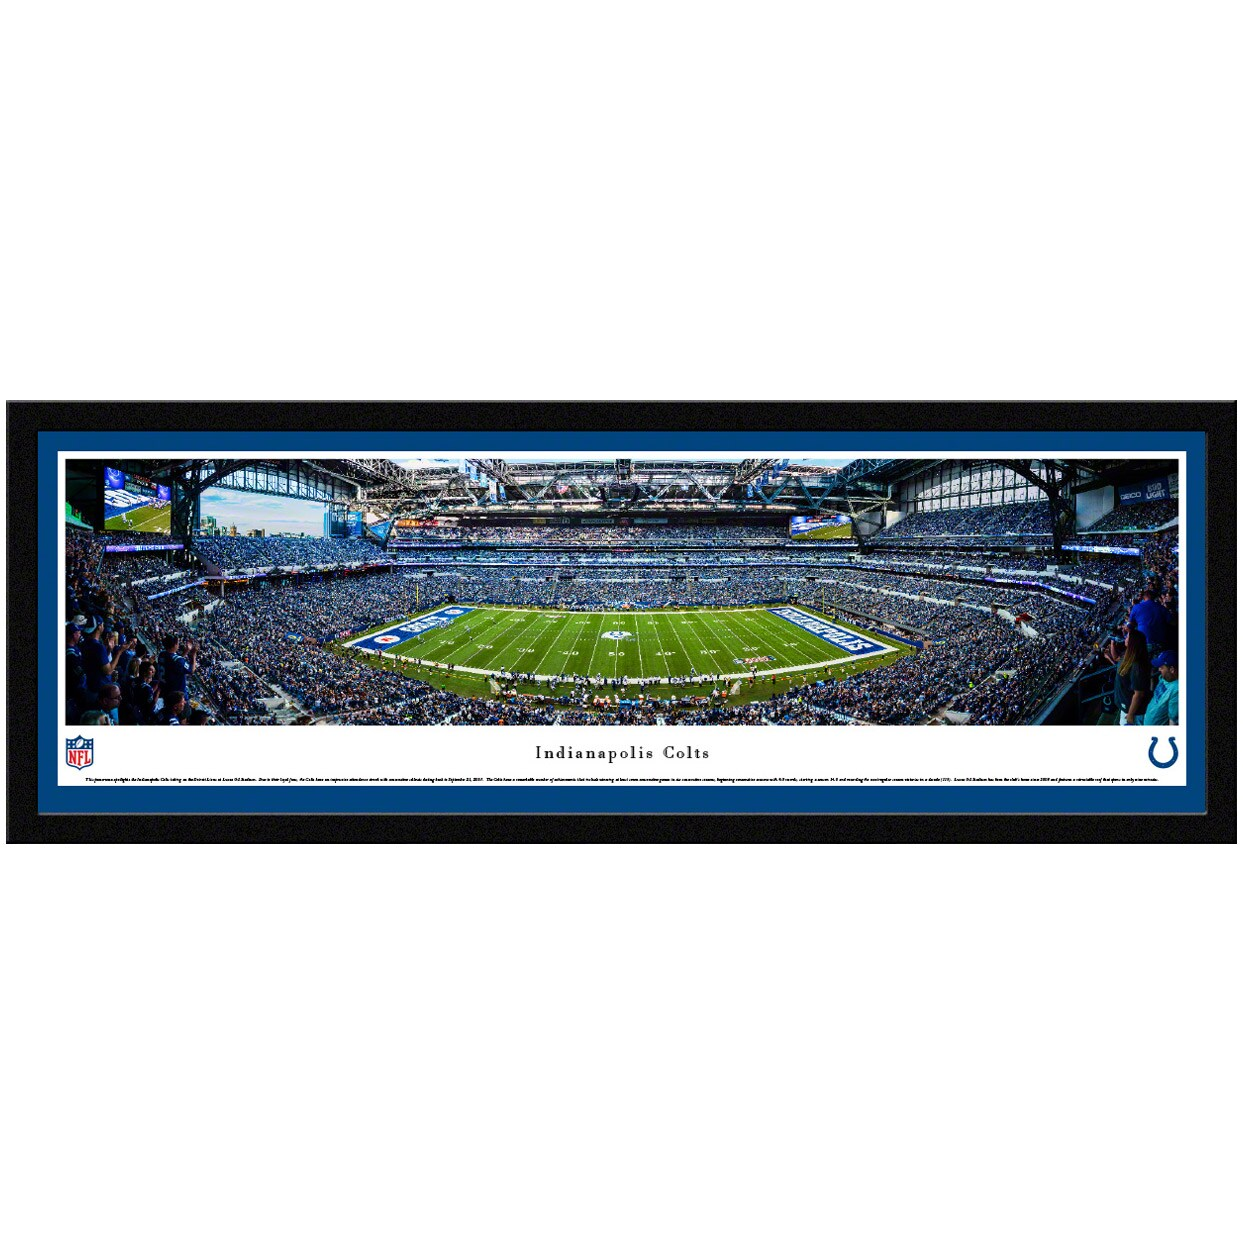 "Indianapolis Colts 42"" x 15.5"" Select Frame Panoramic Photo"